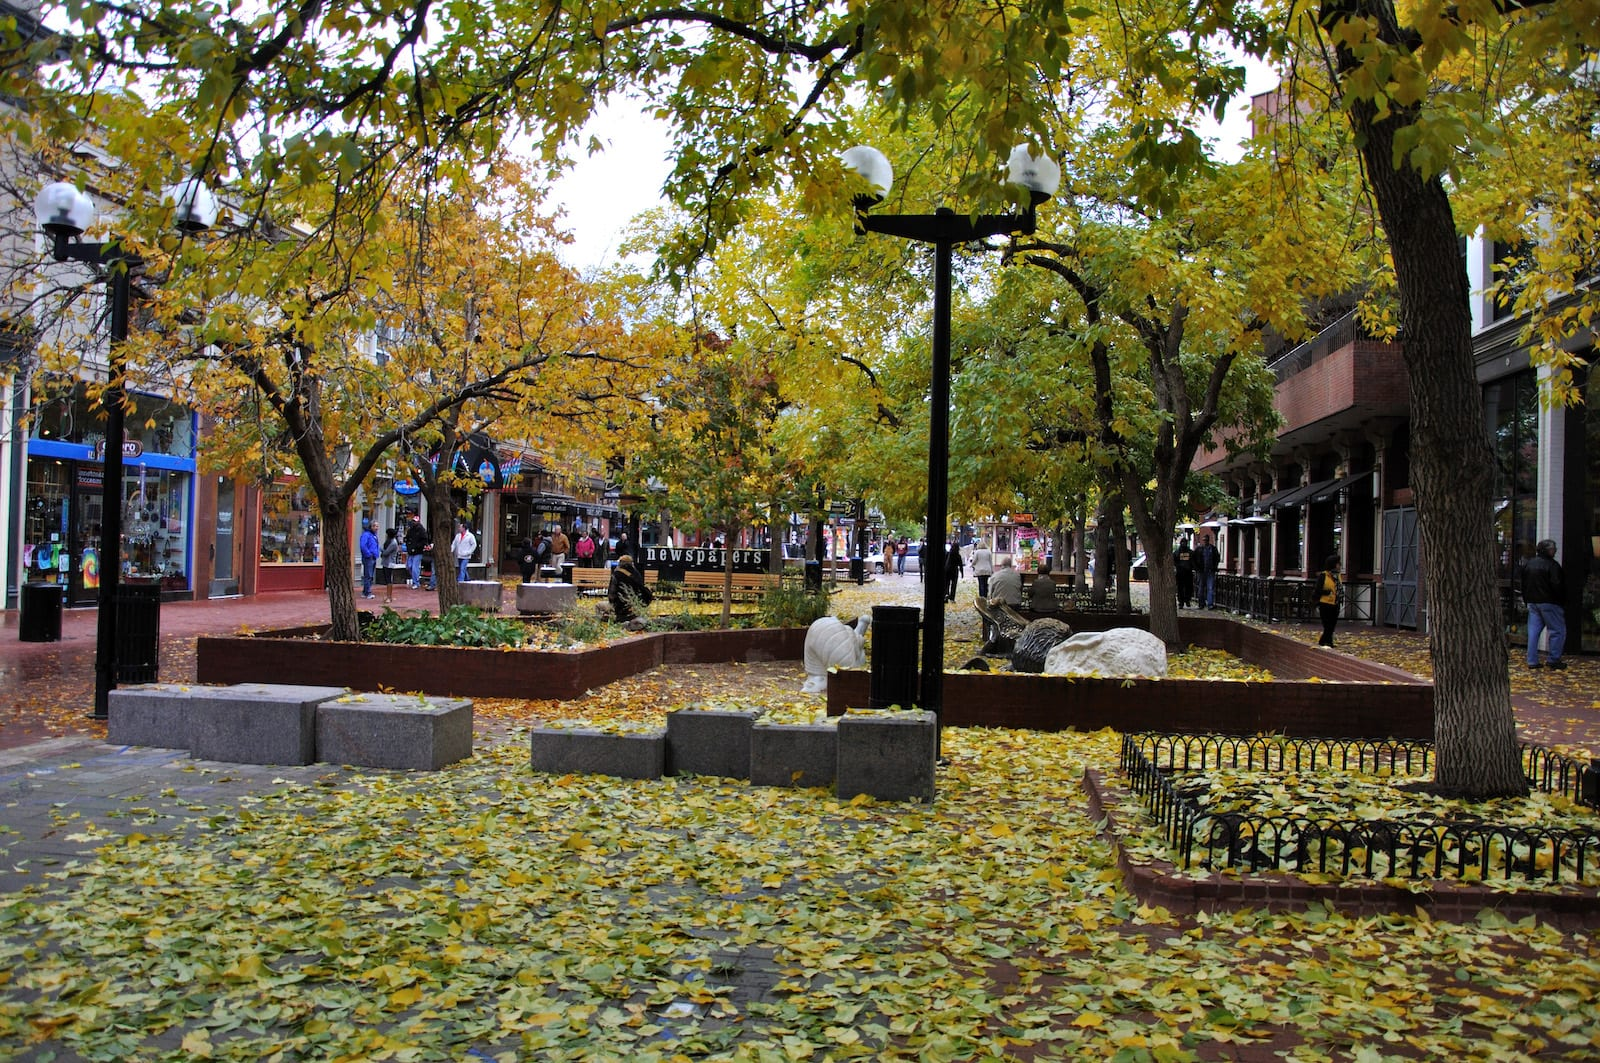 Pearl Street Mall in Boulder, CO